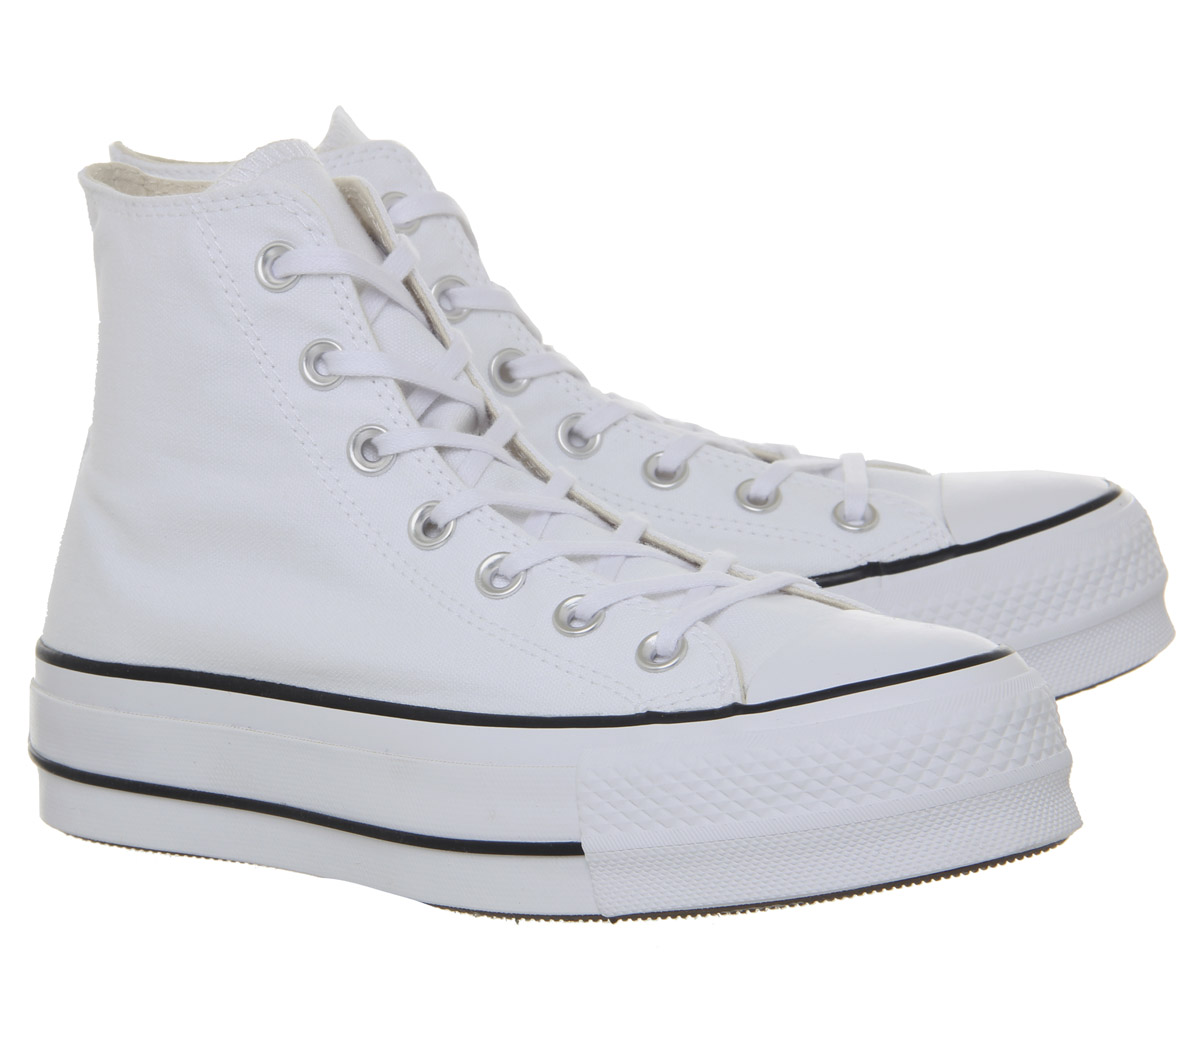 8ec7fce7e5e9 Womens Converse All Star Lift Hi Trainers White Black White Trainers ...